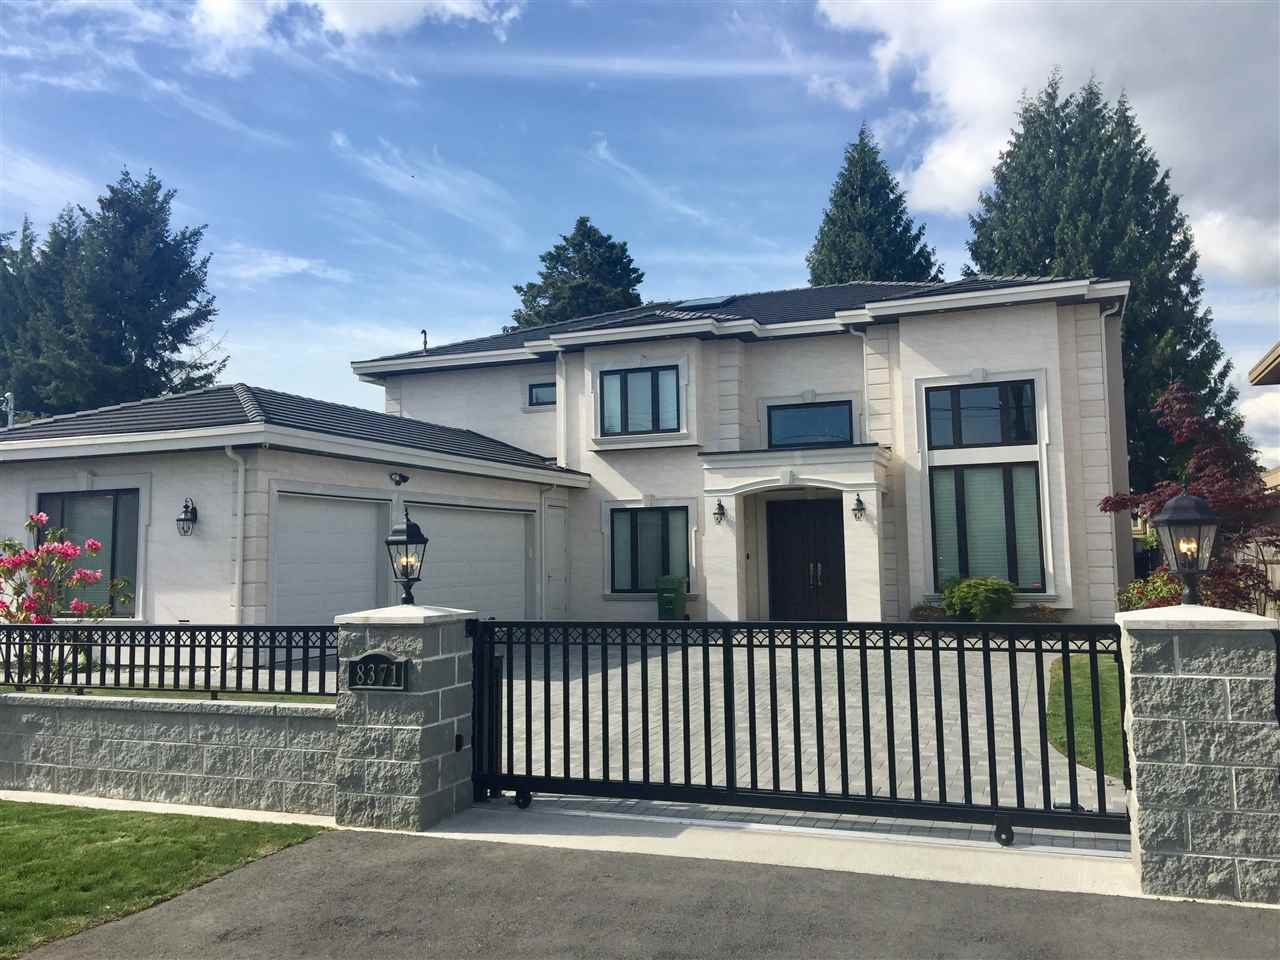 In prestigious Saunders neighbourhood, Custom built 3,626 sf house with functional floor plan. 5 bdrms, 5.5 baths, office, wok kitchen, media room, 3 car garage on 66 x 120 sf south facing lot. Elegant finishing and fine workmanship with all top of the line appliances. Features natural stone countertops, skylights, crown moldings, A/C, HRV & more. Walking distance to schools, shopping center, park, South Arm community center and public transportation. Call for your private viewing.